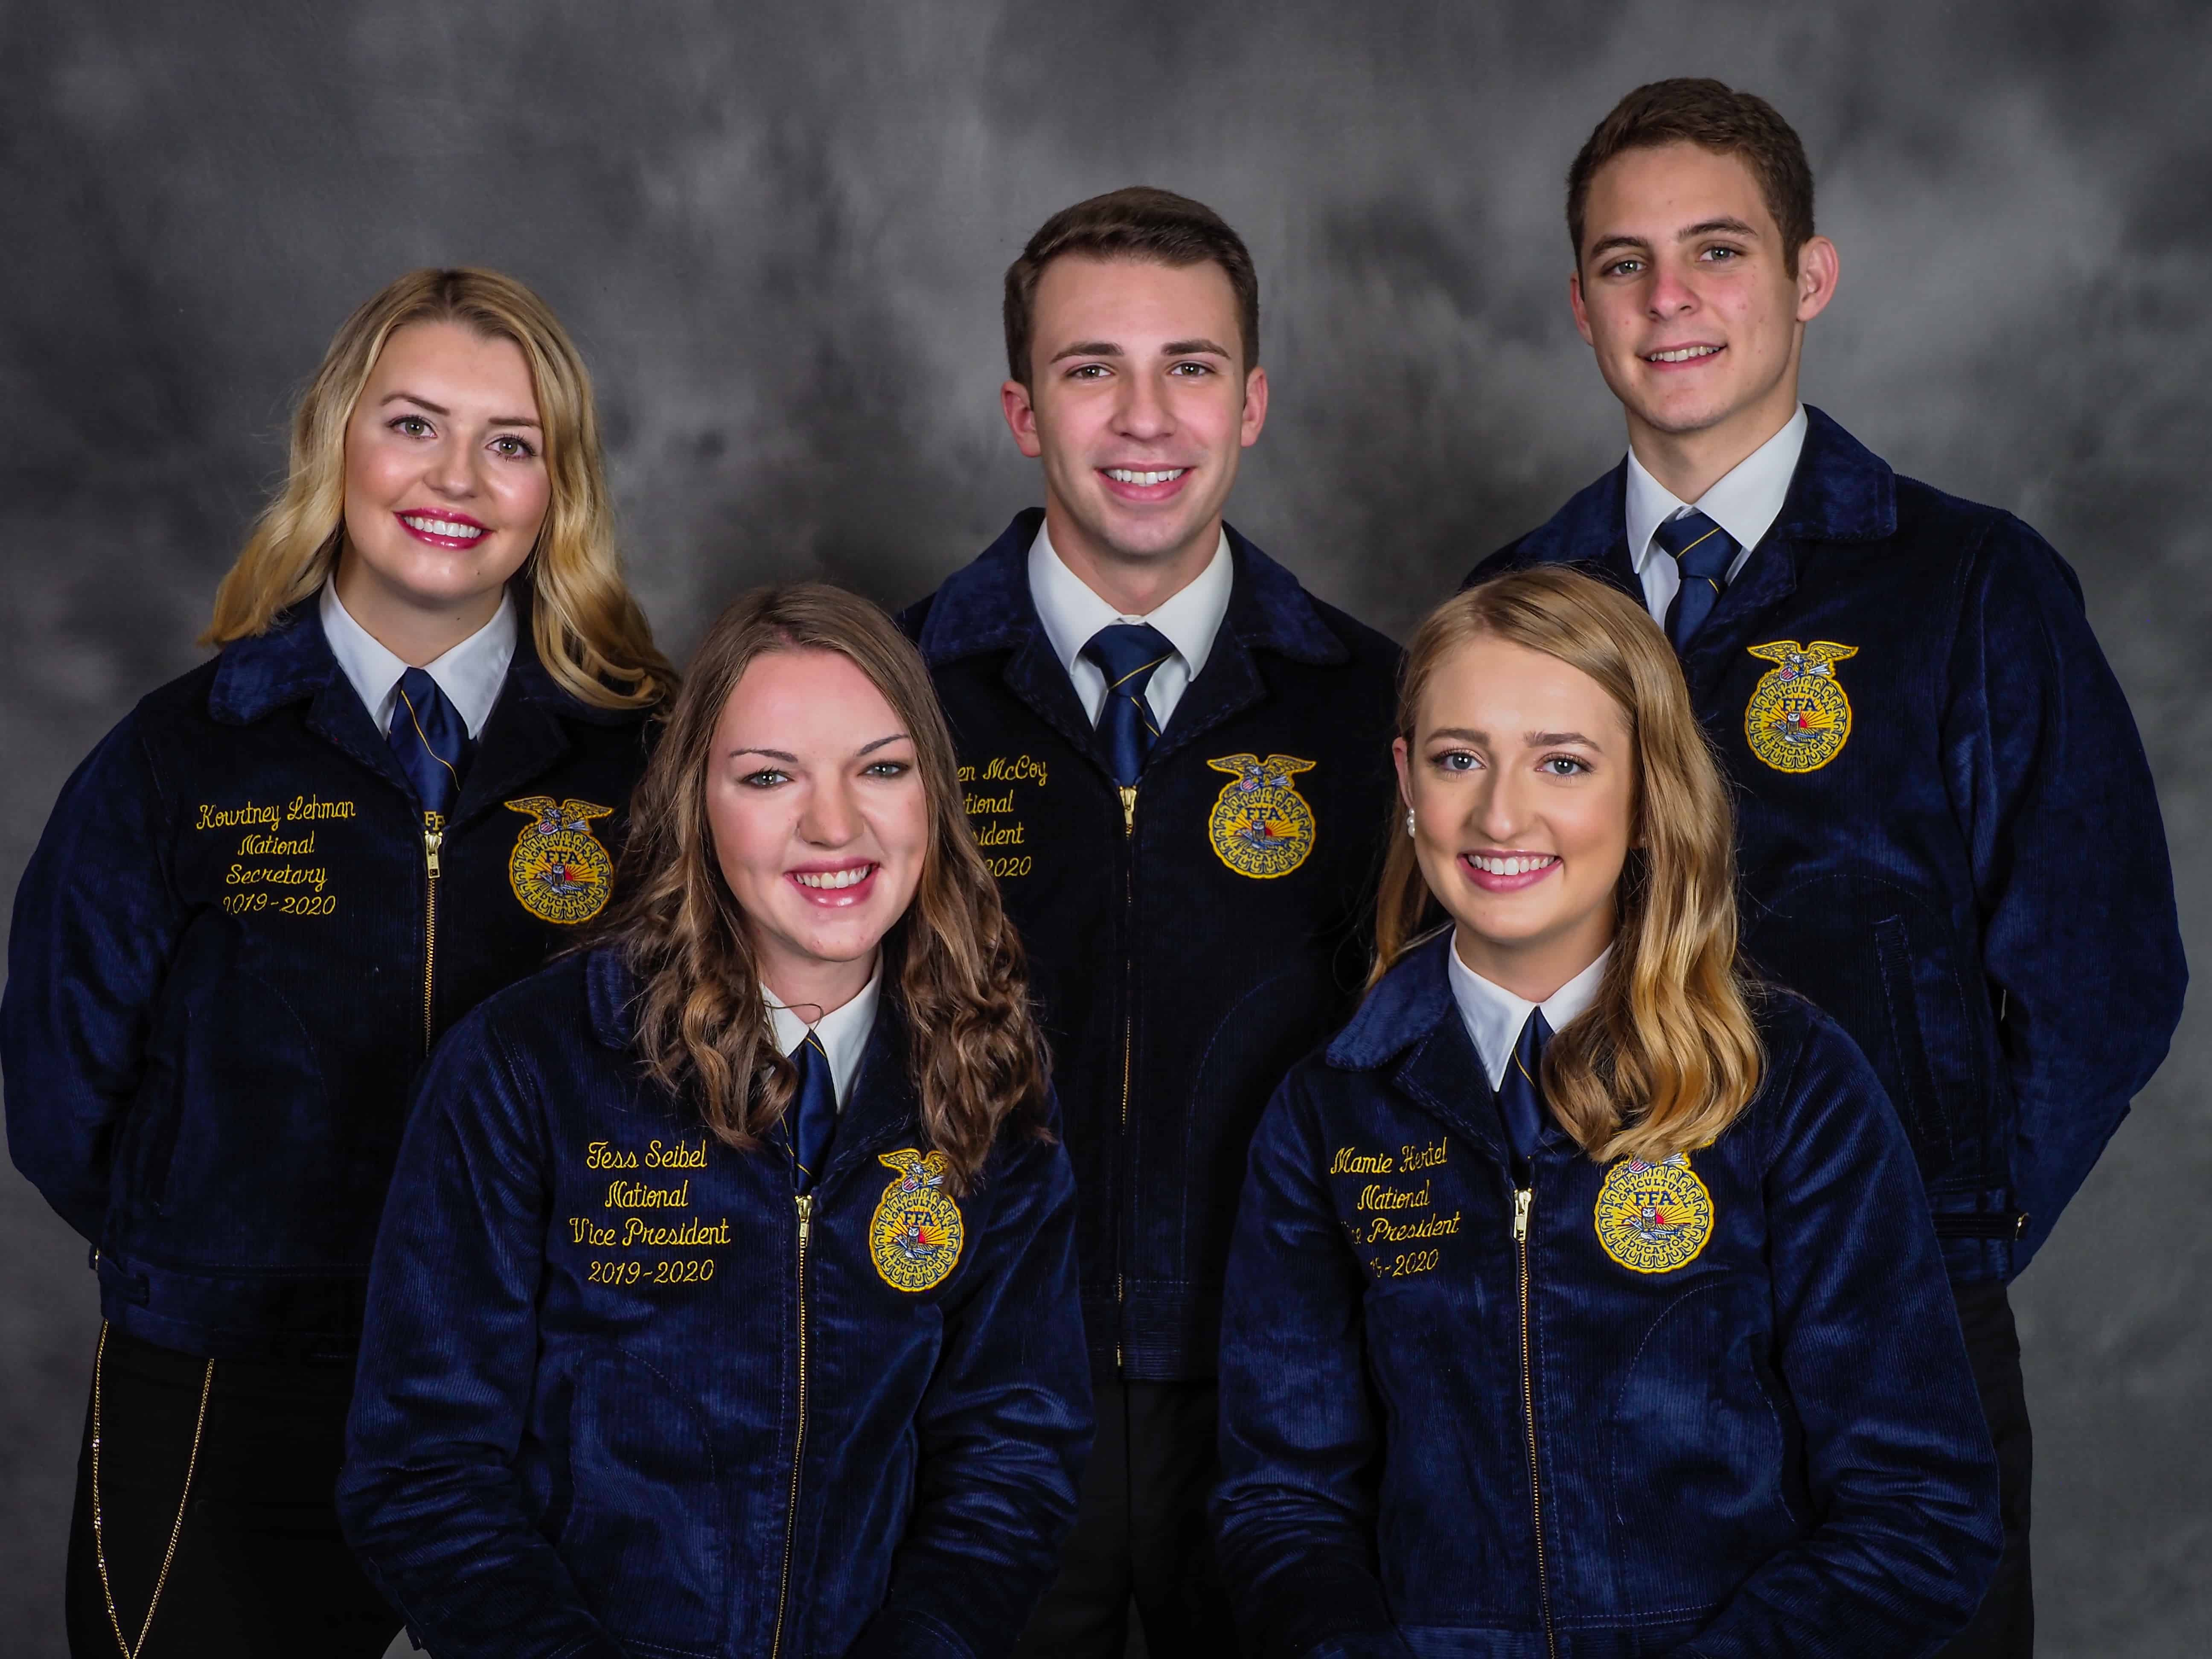 National Officers: FFA Service